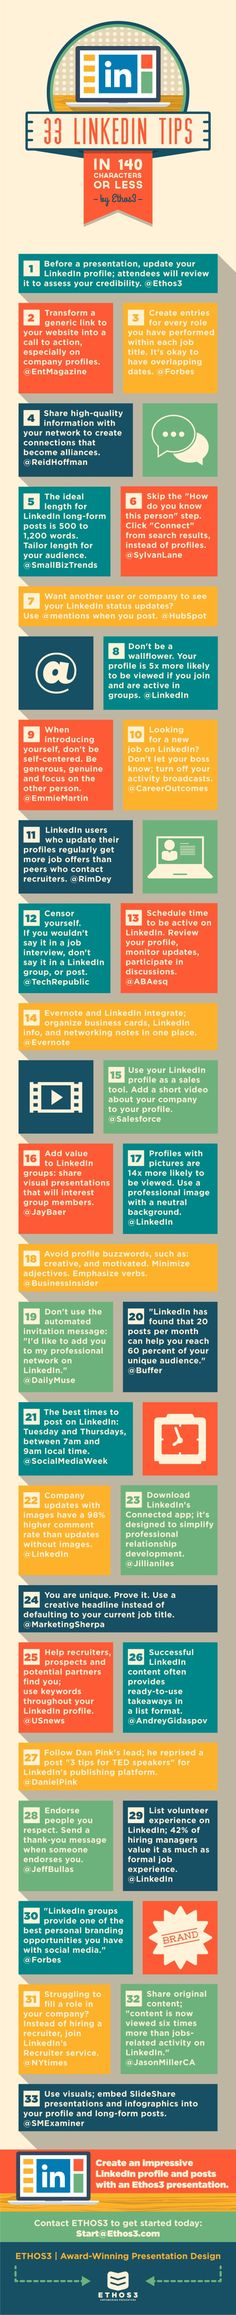 linkedin tips for business infographic from Groove Marketing Mundo Marketing, Marketing Trends, Content Marketing, Internet Marketing, Online Marketing, Social Media Marketing, Business Marketing, Business Entrepreneur, Marketing Technology